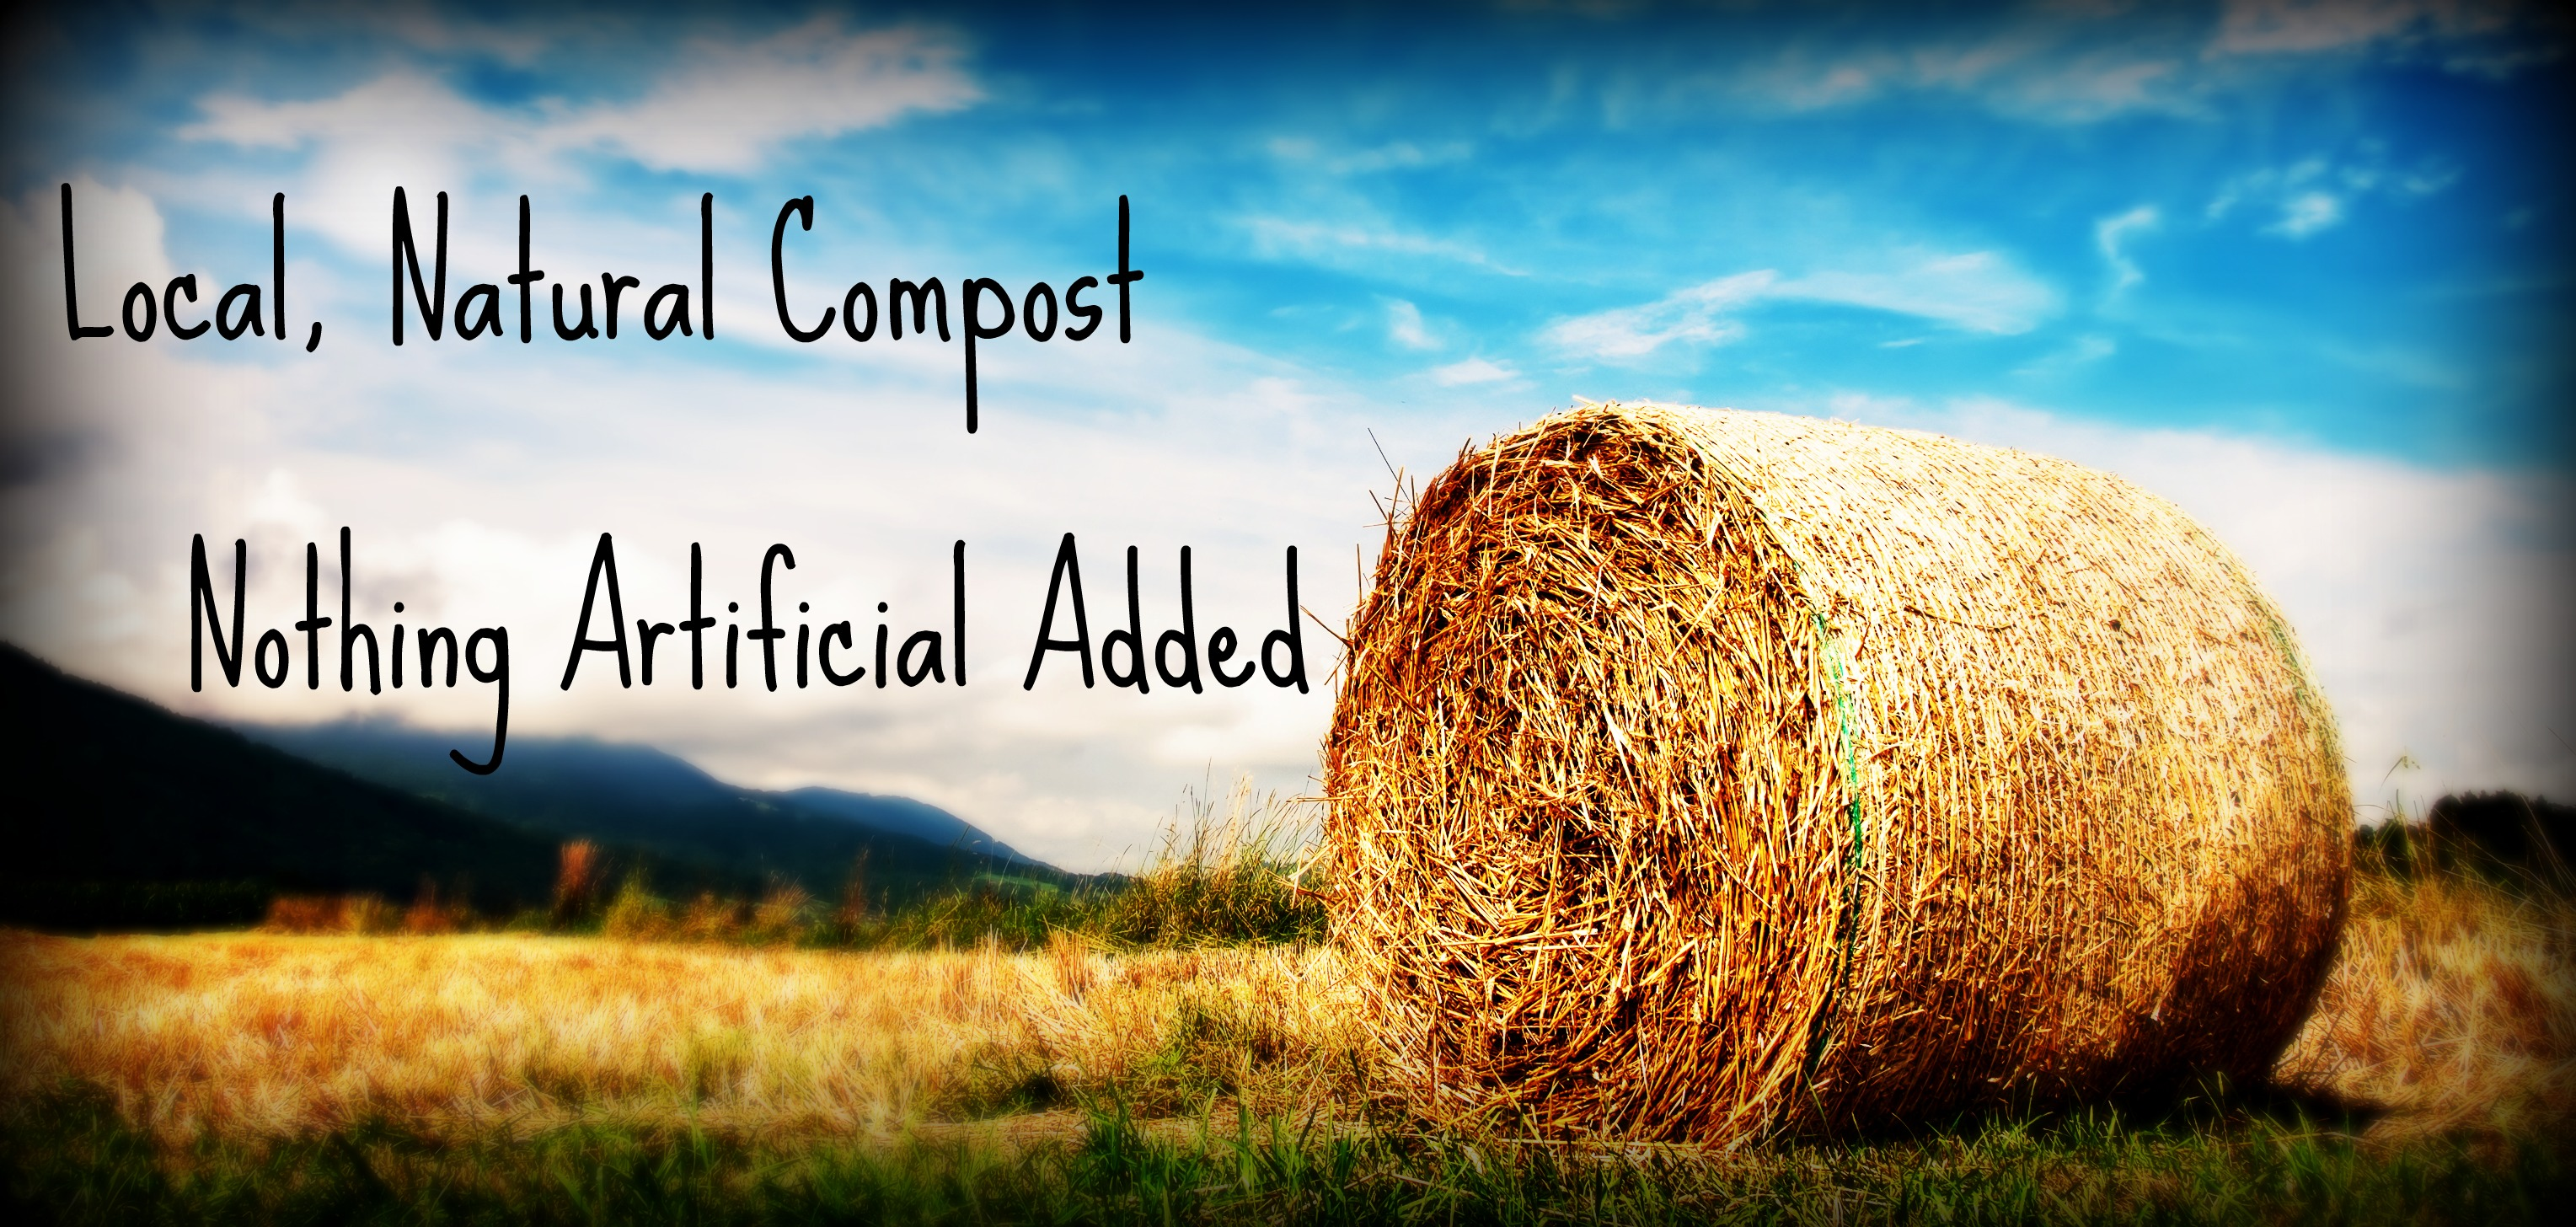 Green Barn Farms Natural Compost